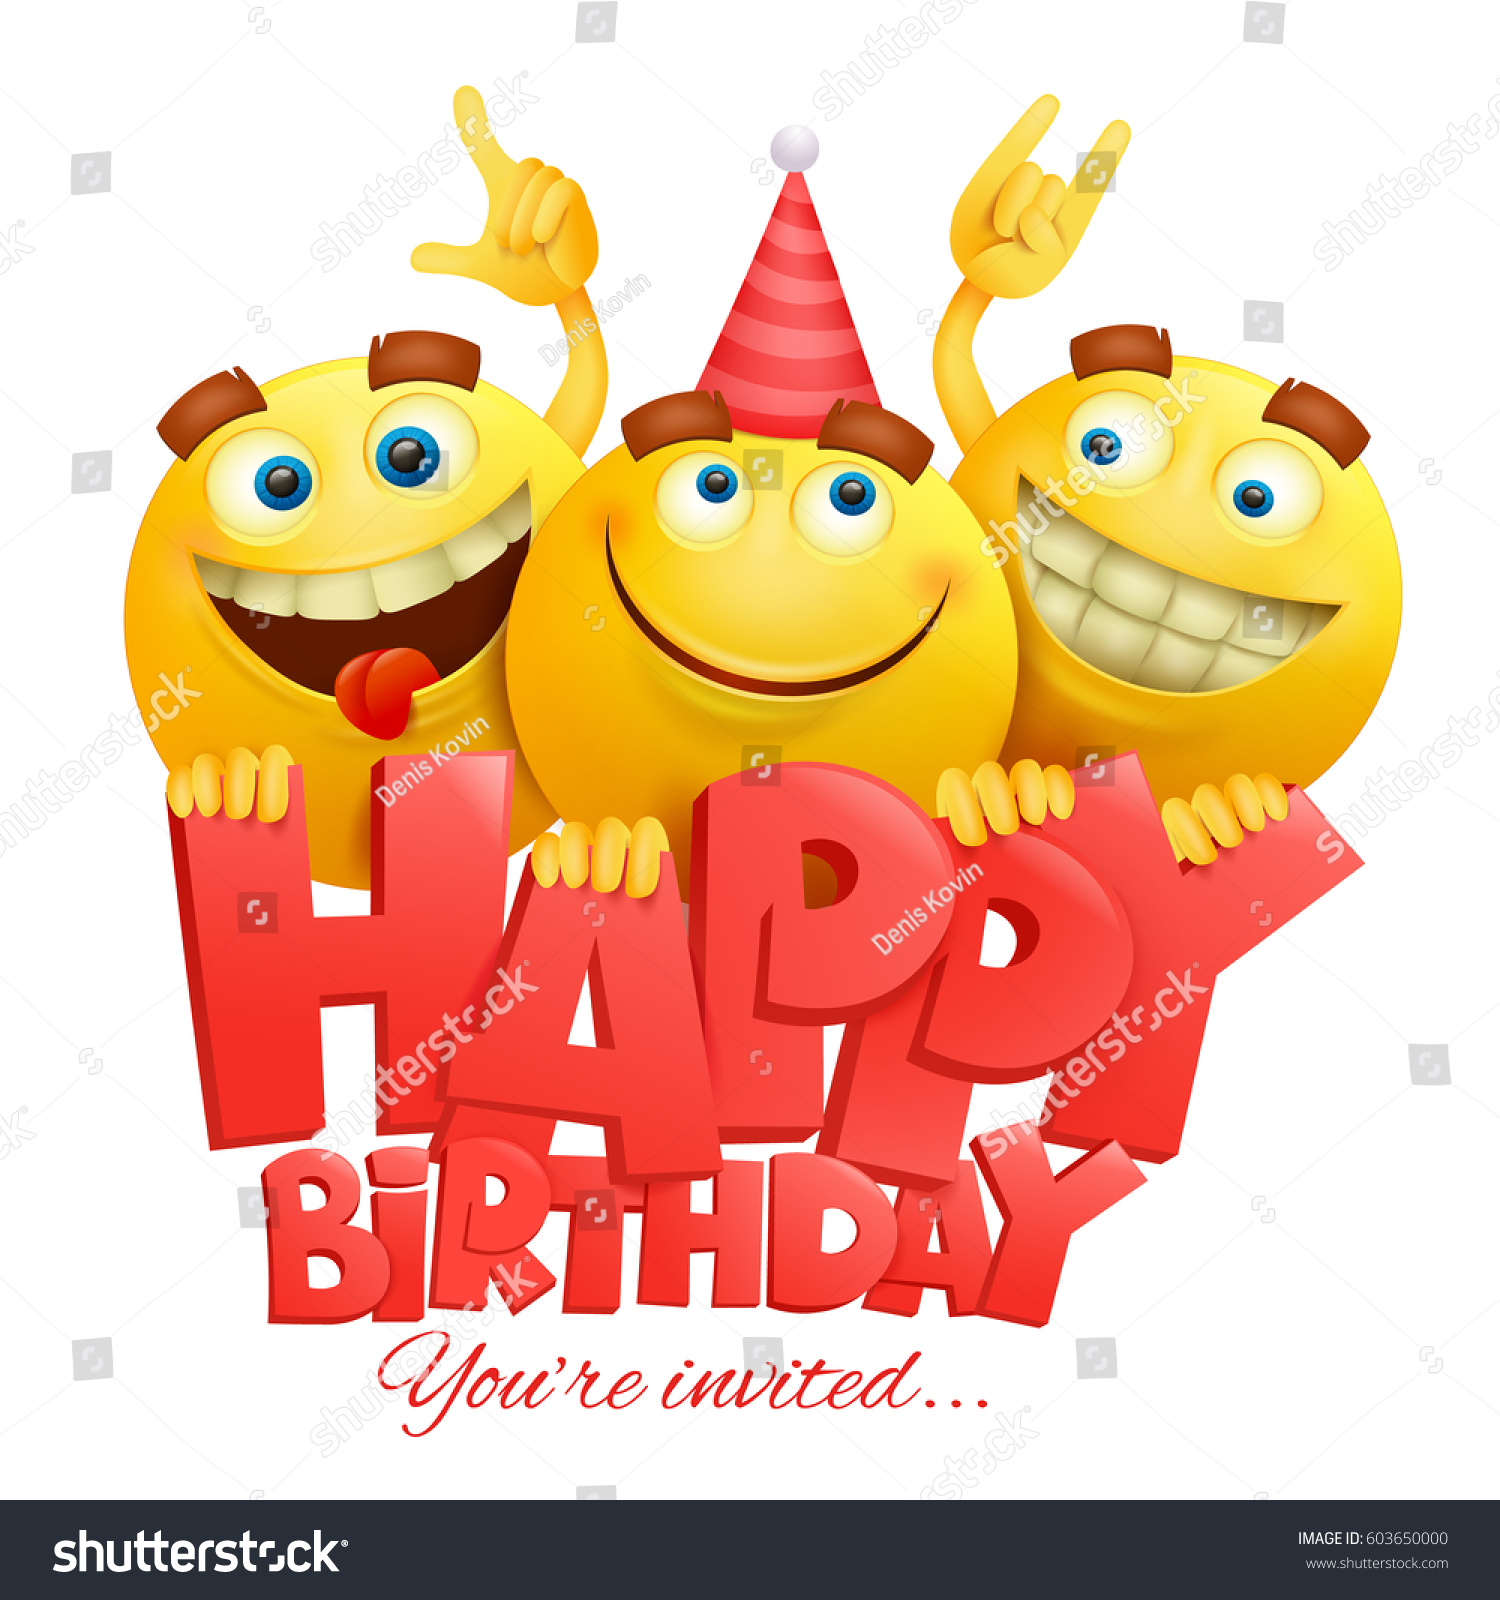 Smiley Yellow Faces Emoji Characters Happy Birthday Card Realistic Vector Illustration